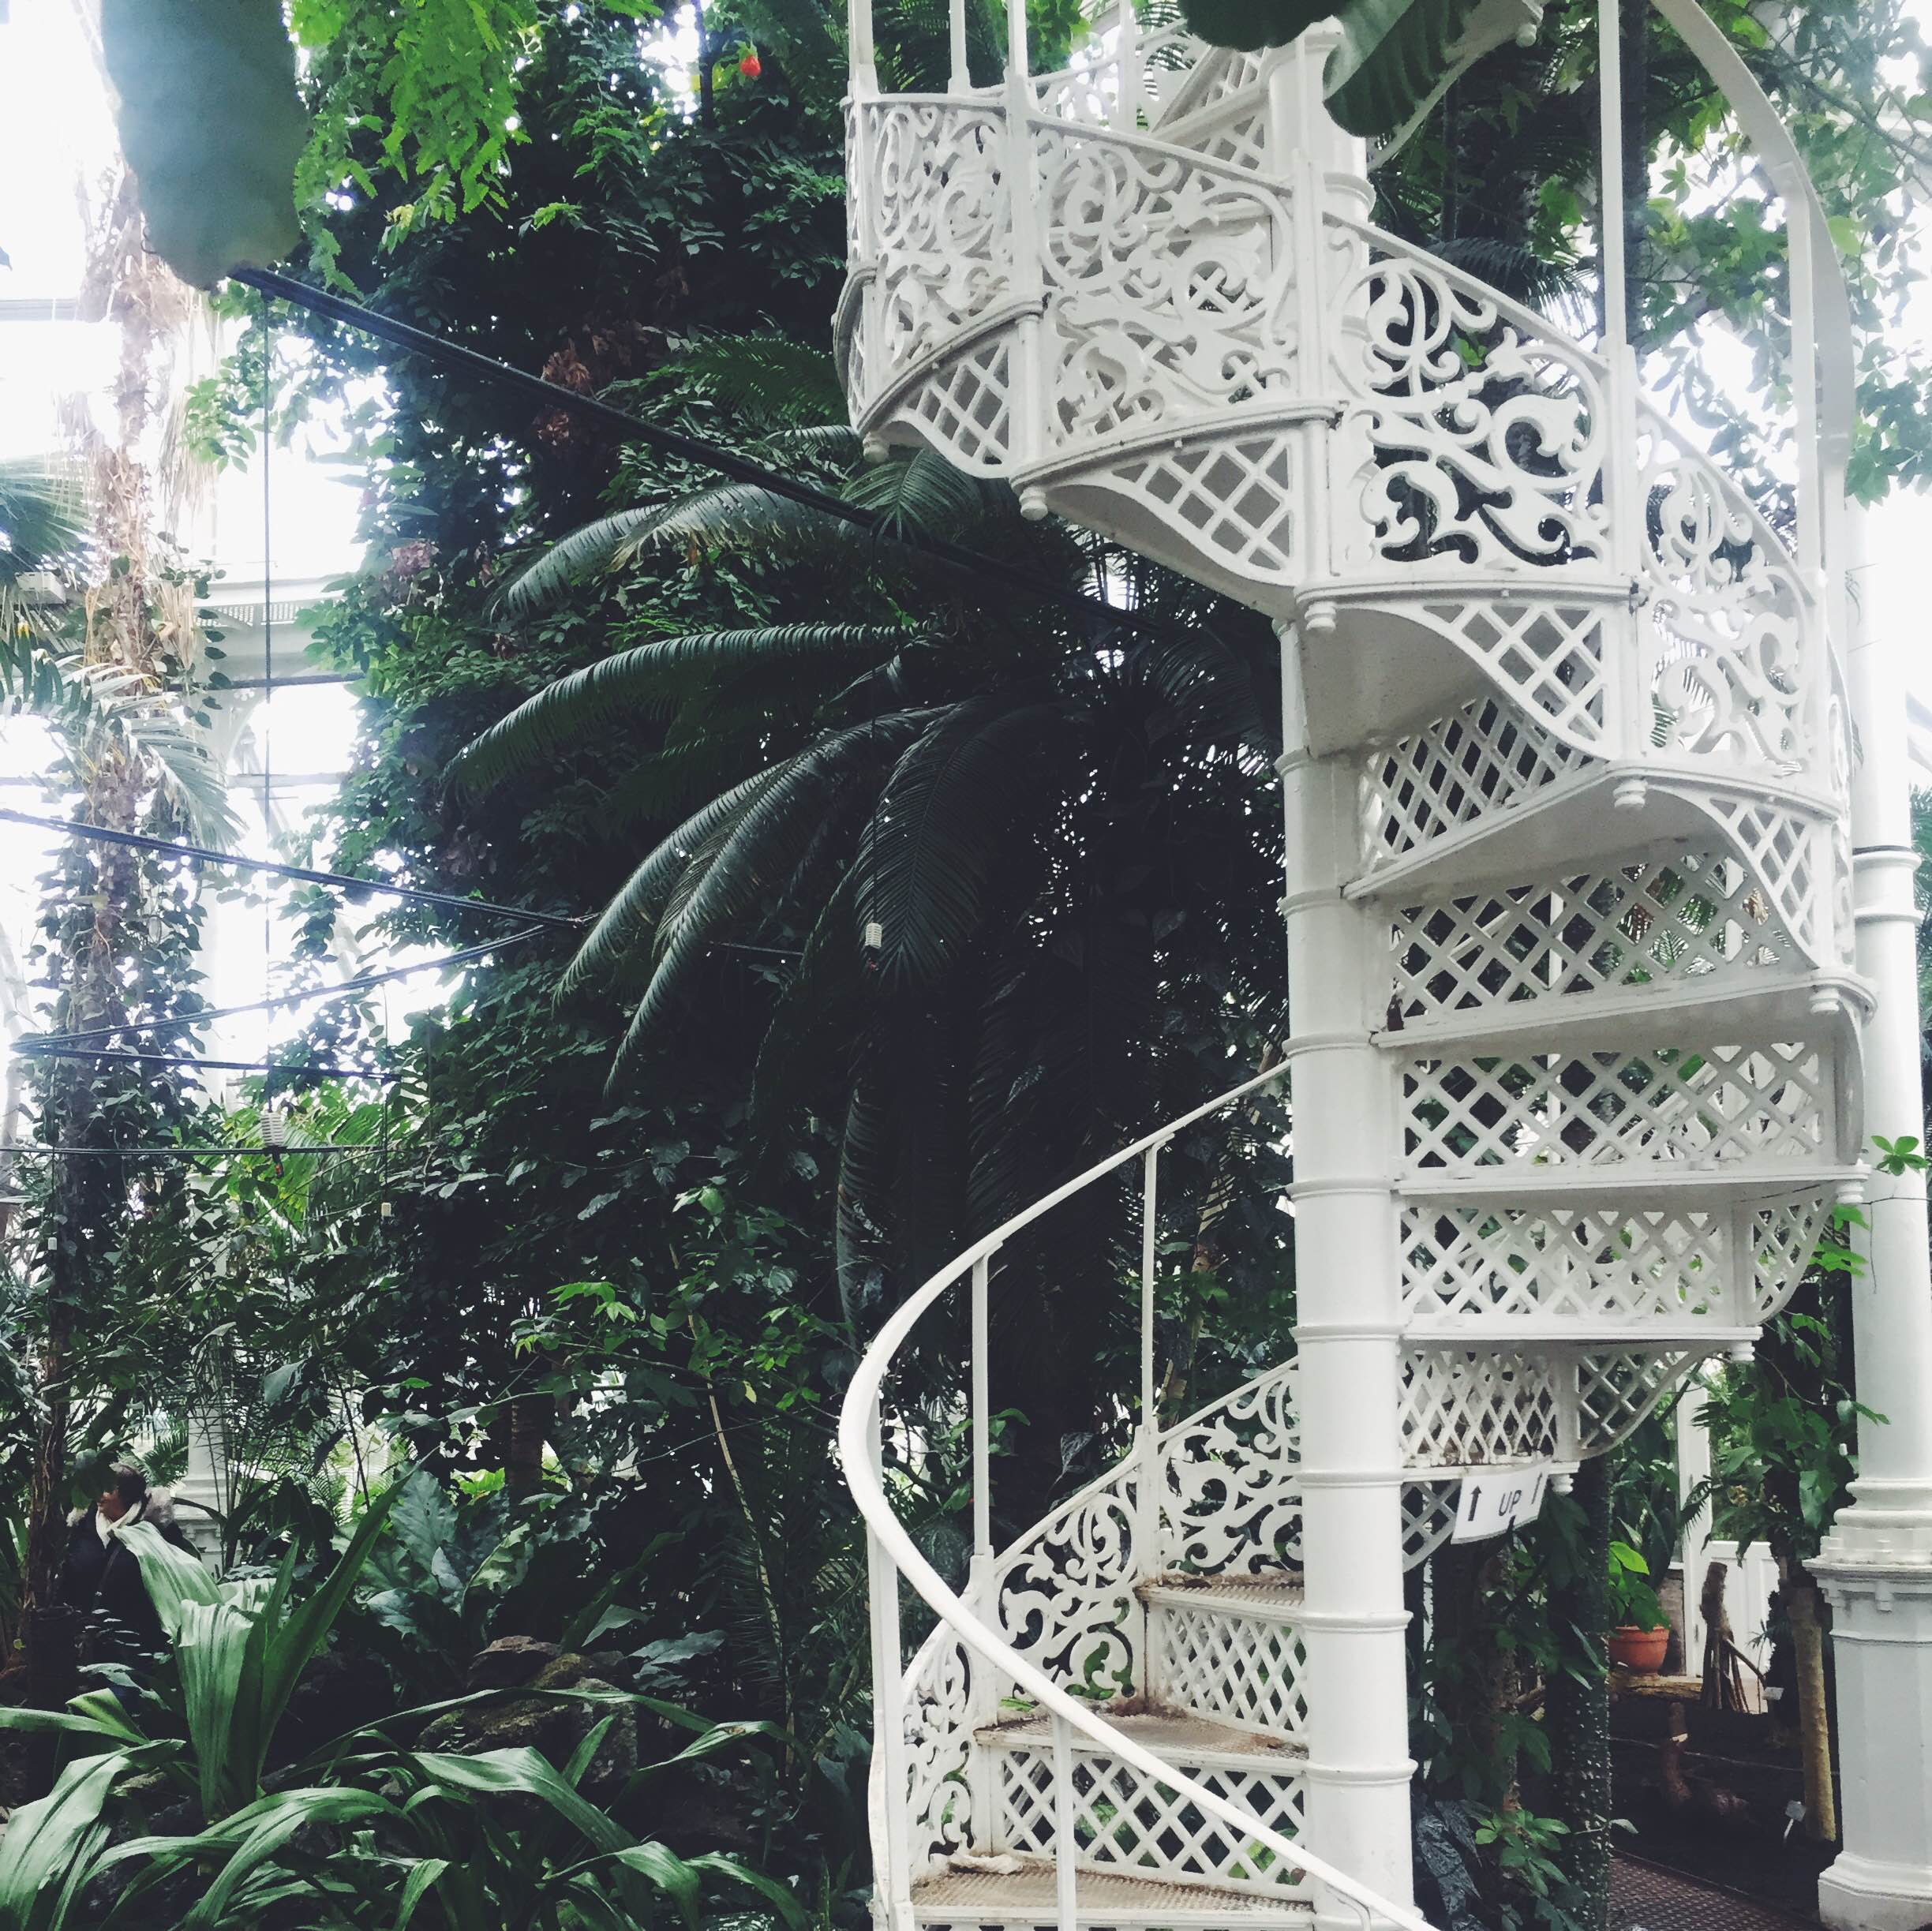 Botanical garden and the popular white staircase, Copenhagen